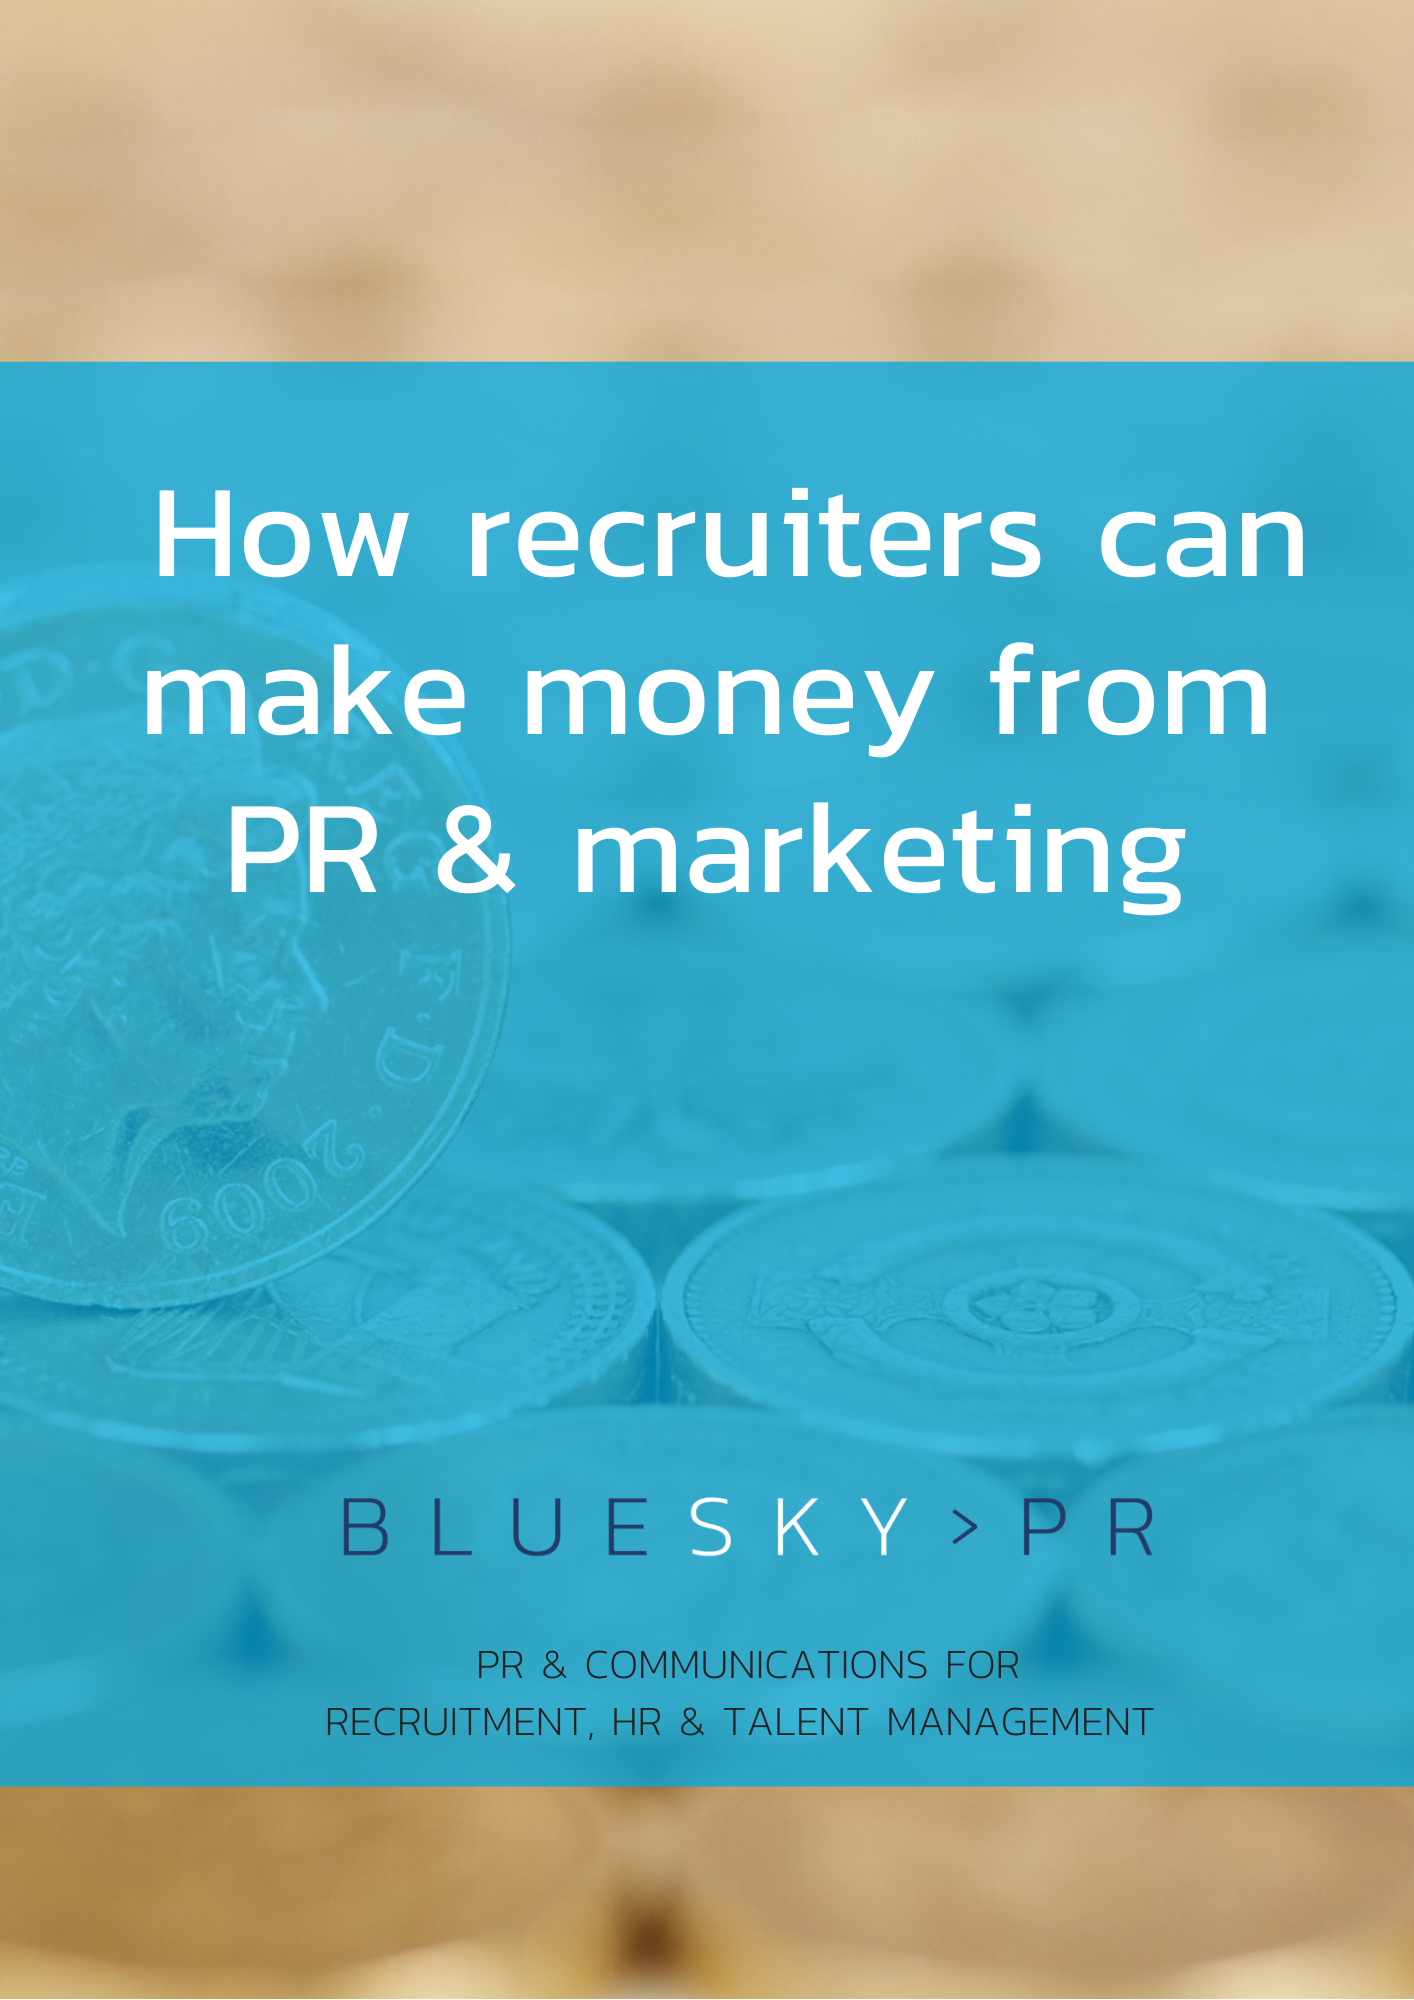 Learn how to make money from PR & marketing